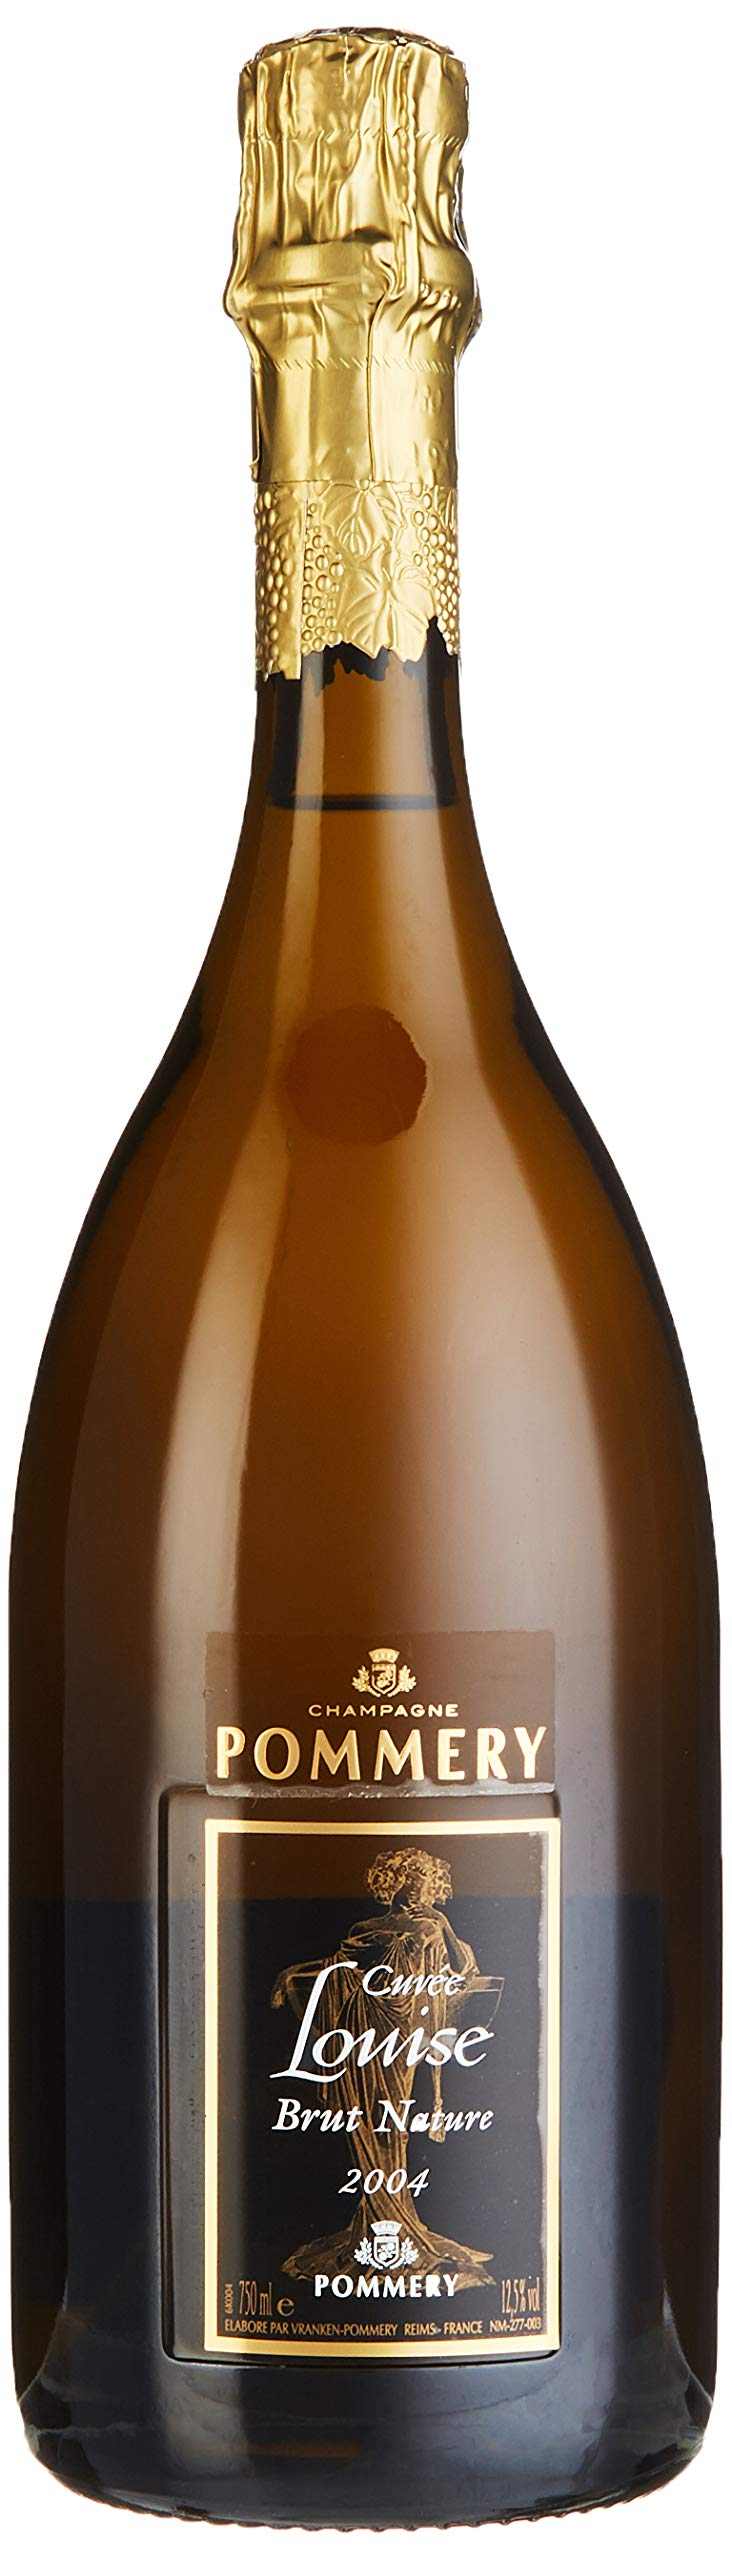 Pommery-Cuve-Louise-Vintage-nature-2004-Champagner-1-x-075-l